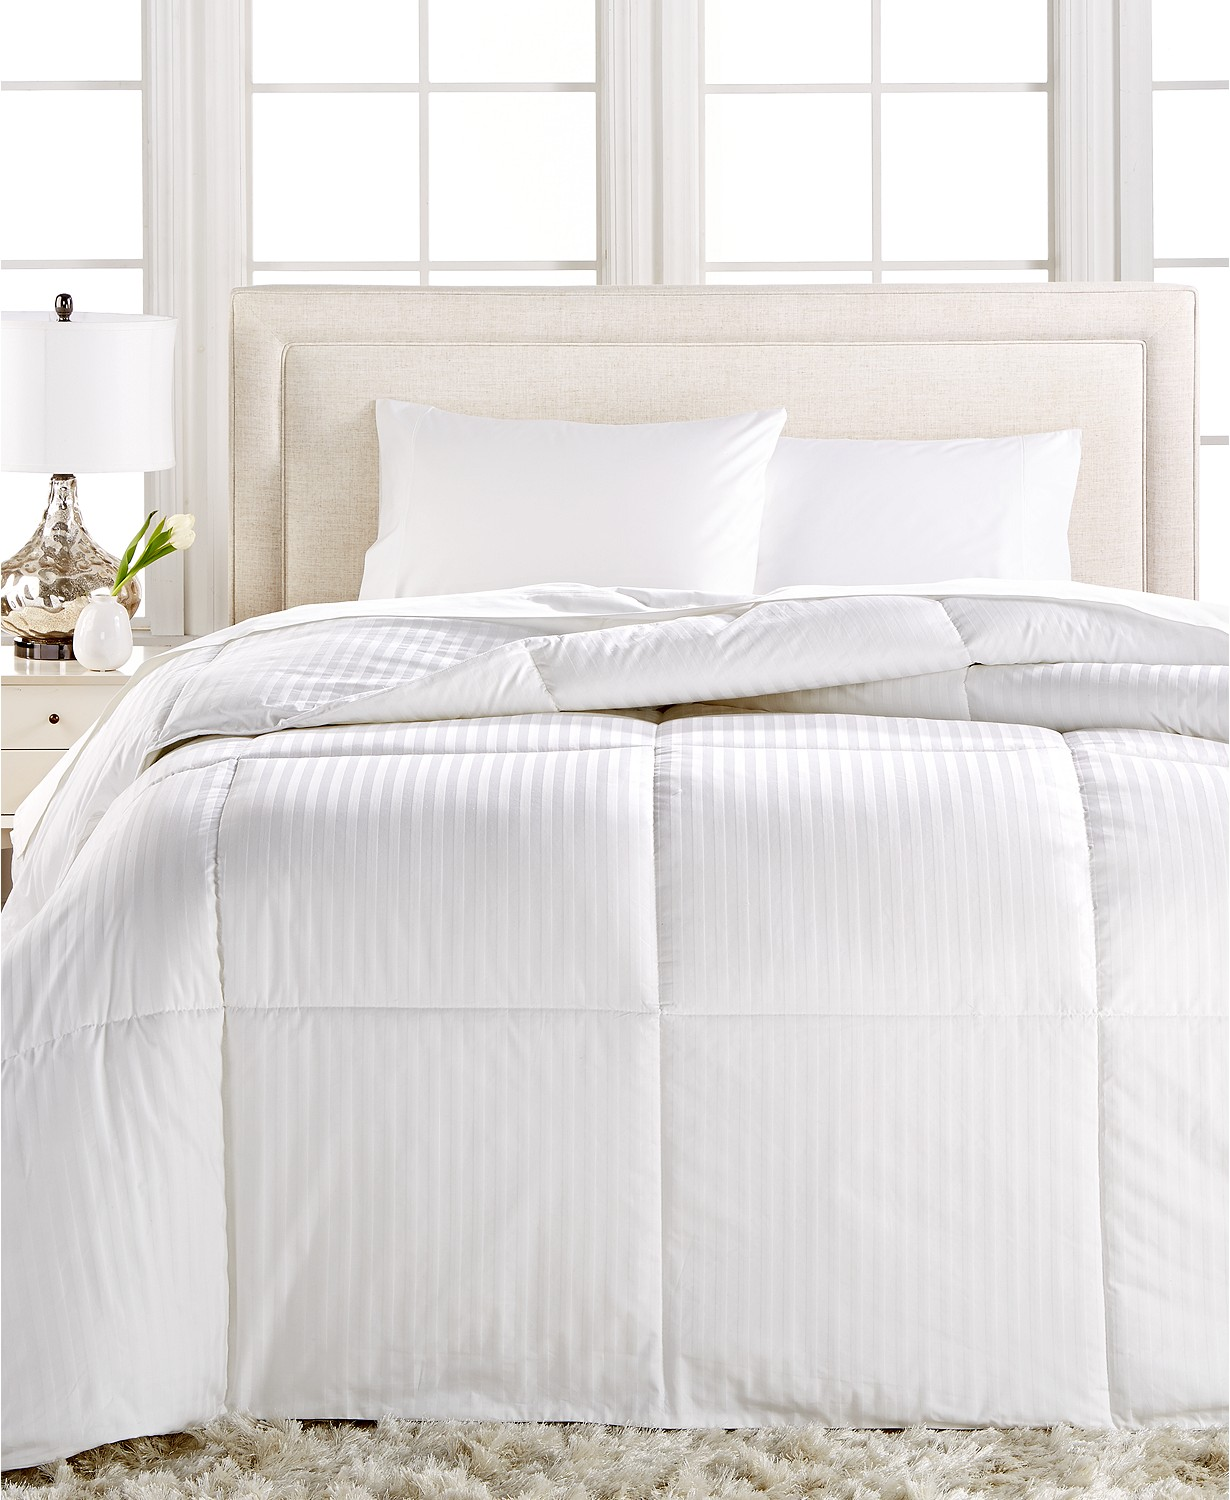 Martha Stewart Collection Sleep Cloud King Down Alternative Comforter